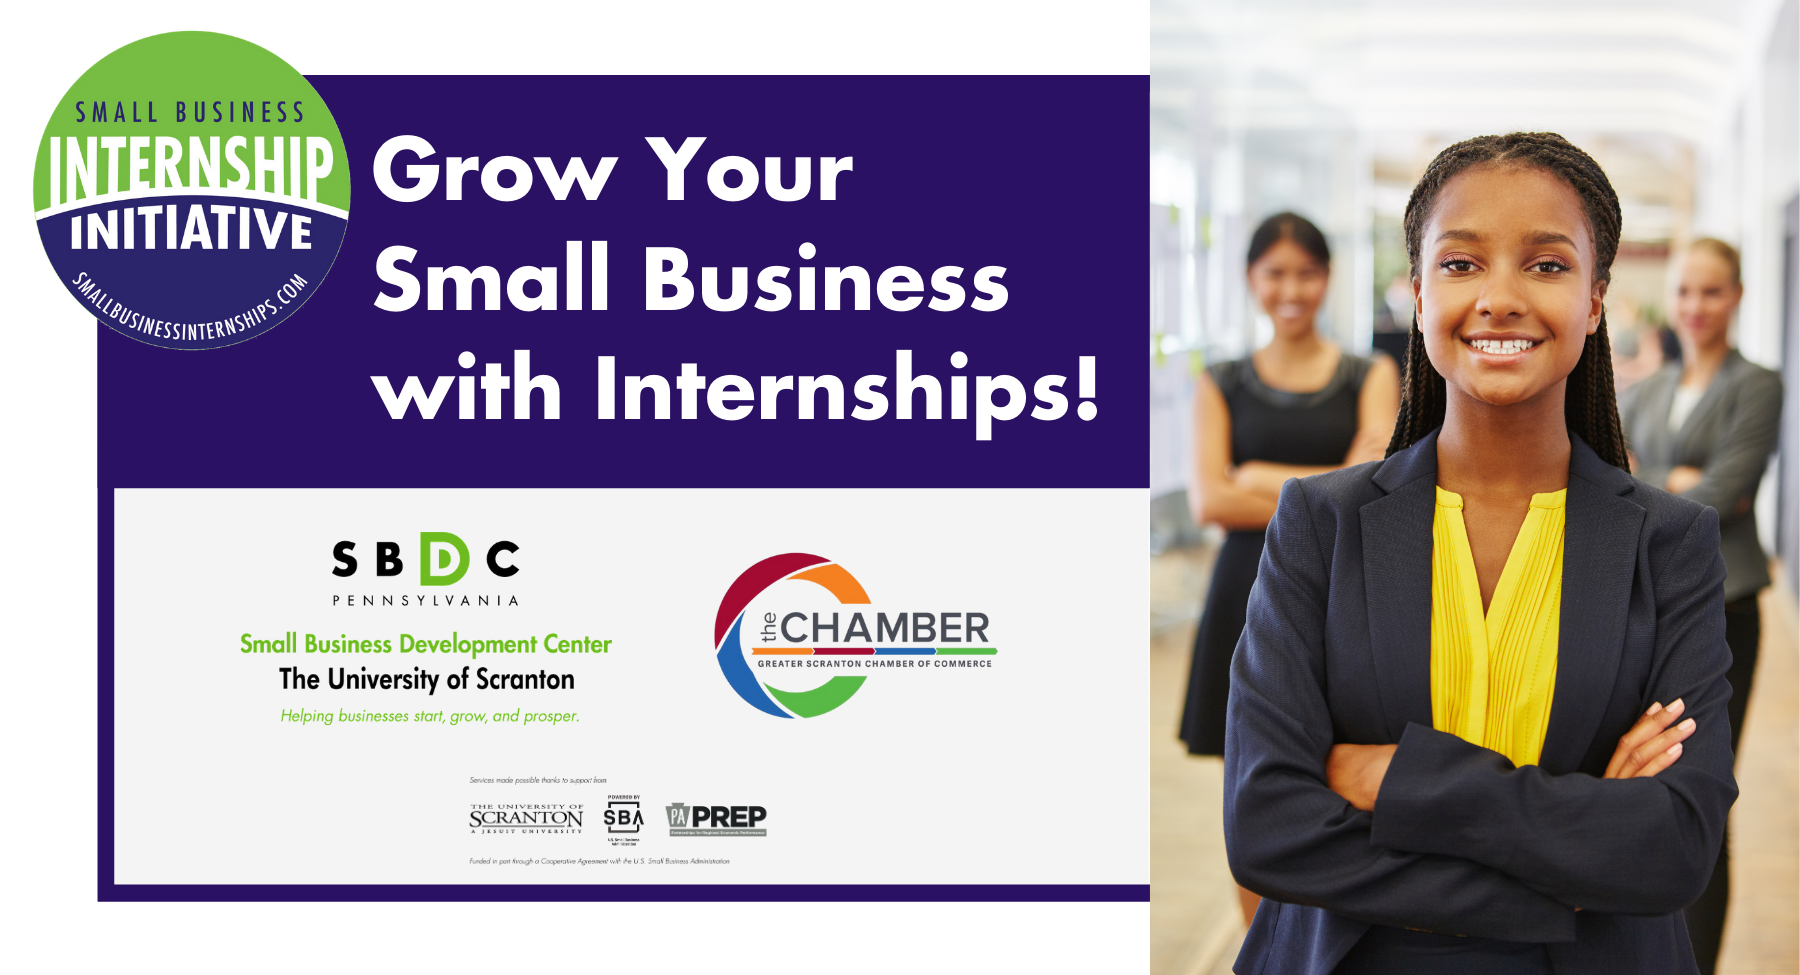 Grow Your Small Business with Internships!